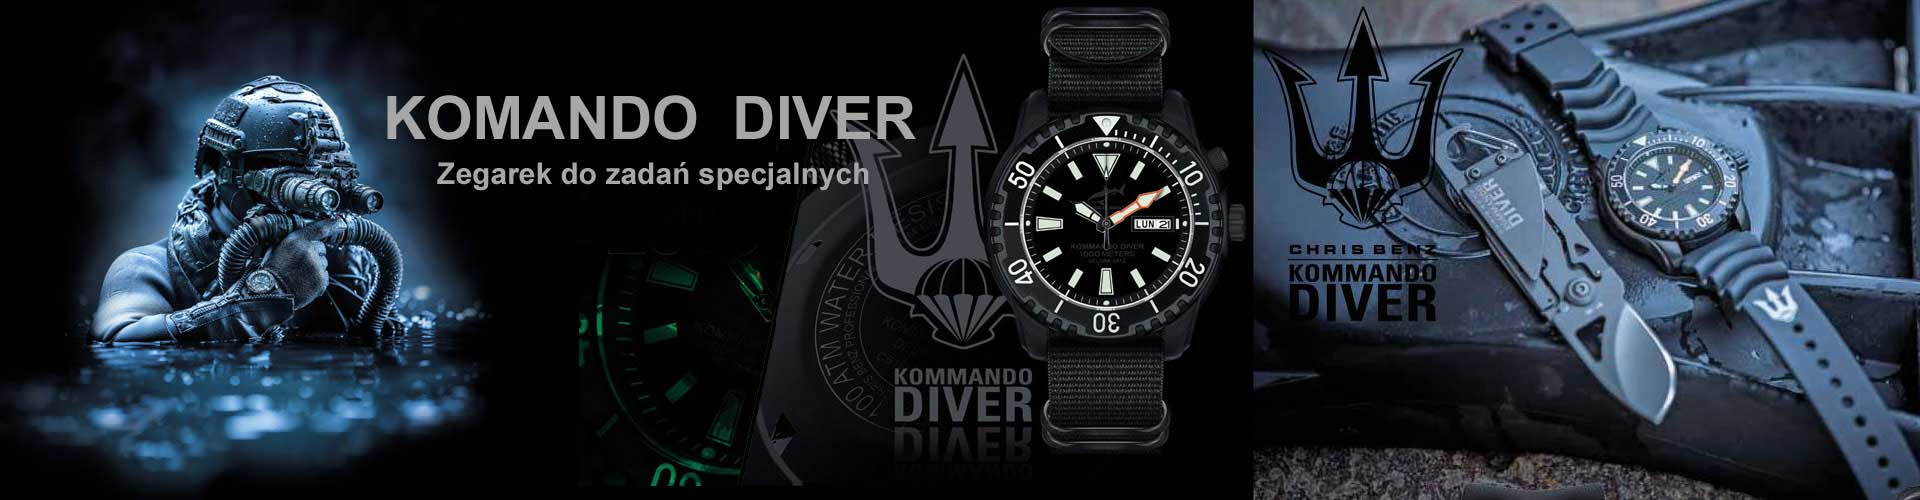 https://chrisbenzshop.pl/4514,zegarek-chris-benz-kommando-diver-cb-1000-kd.html